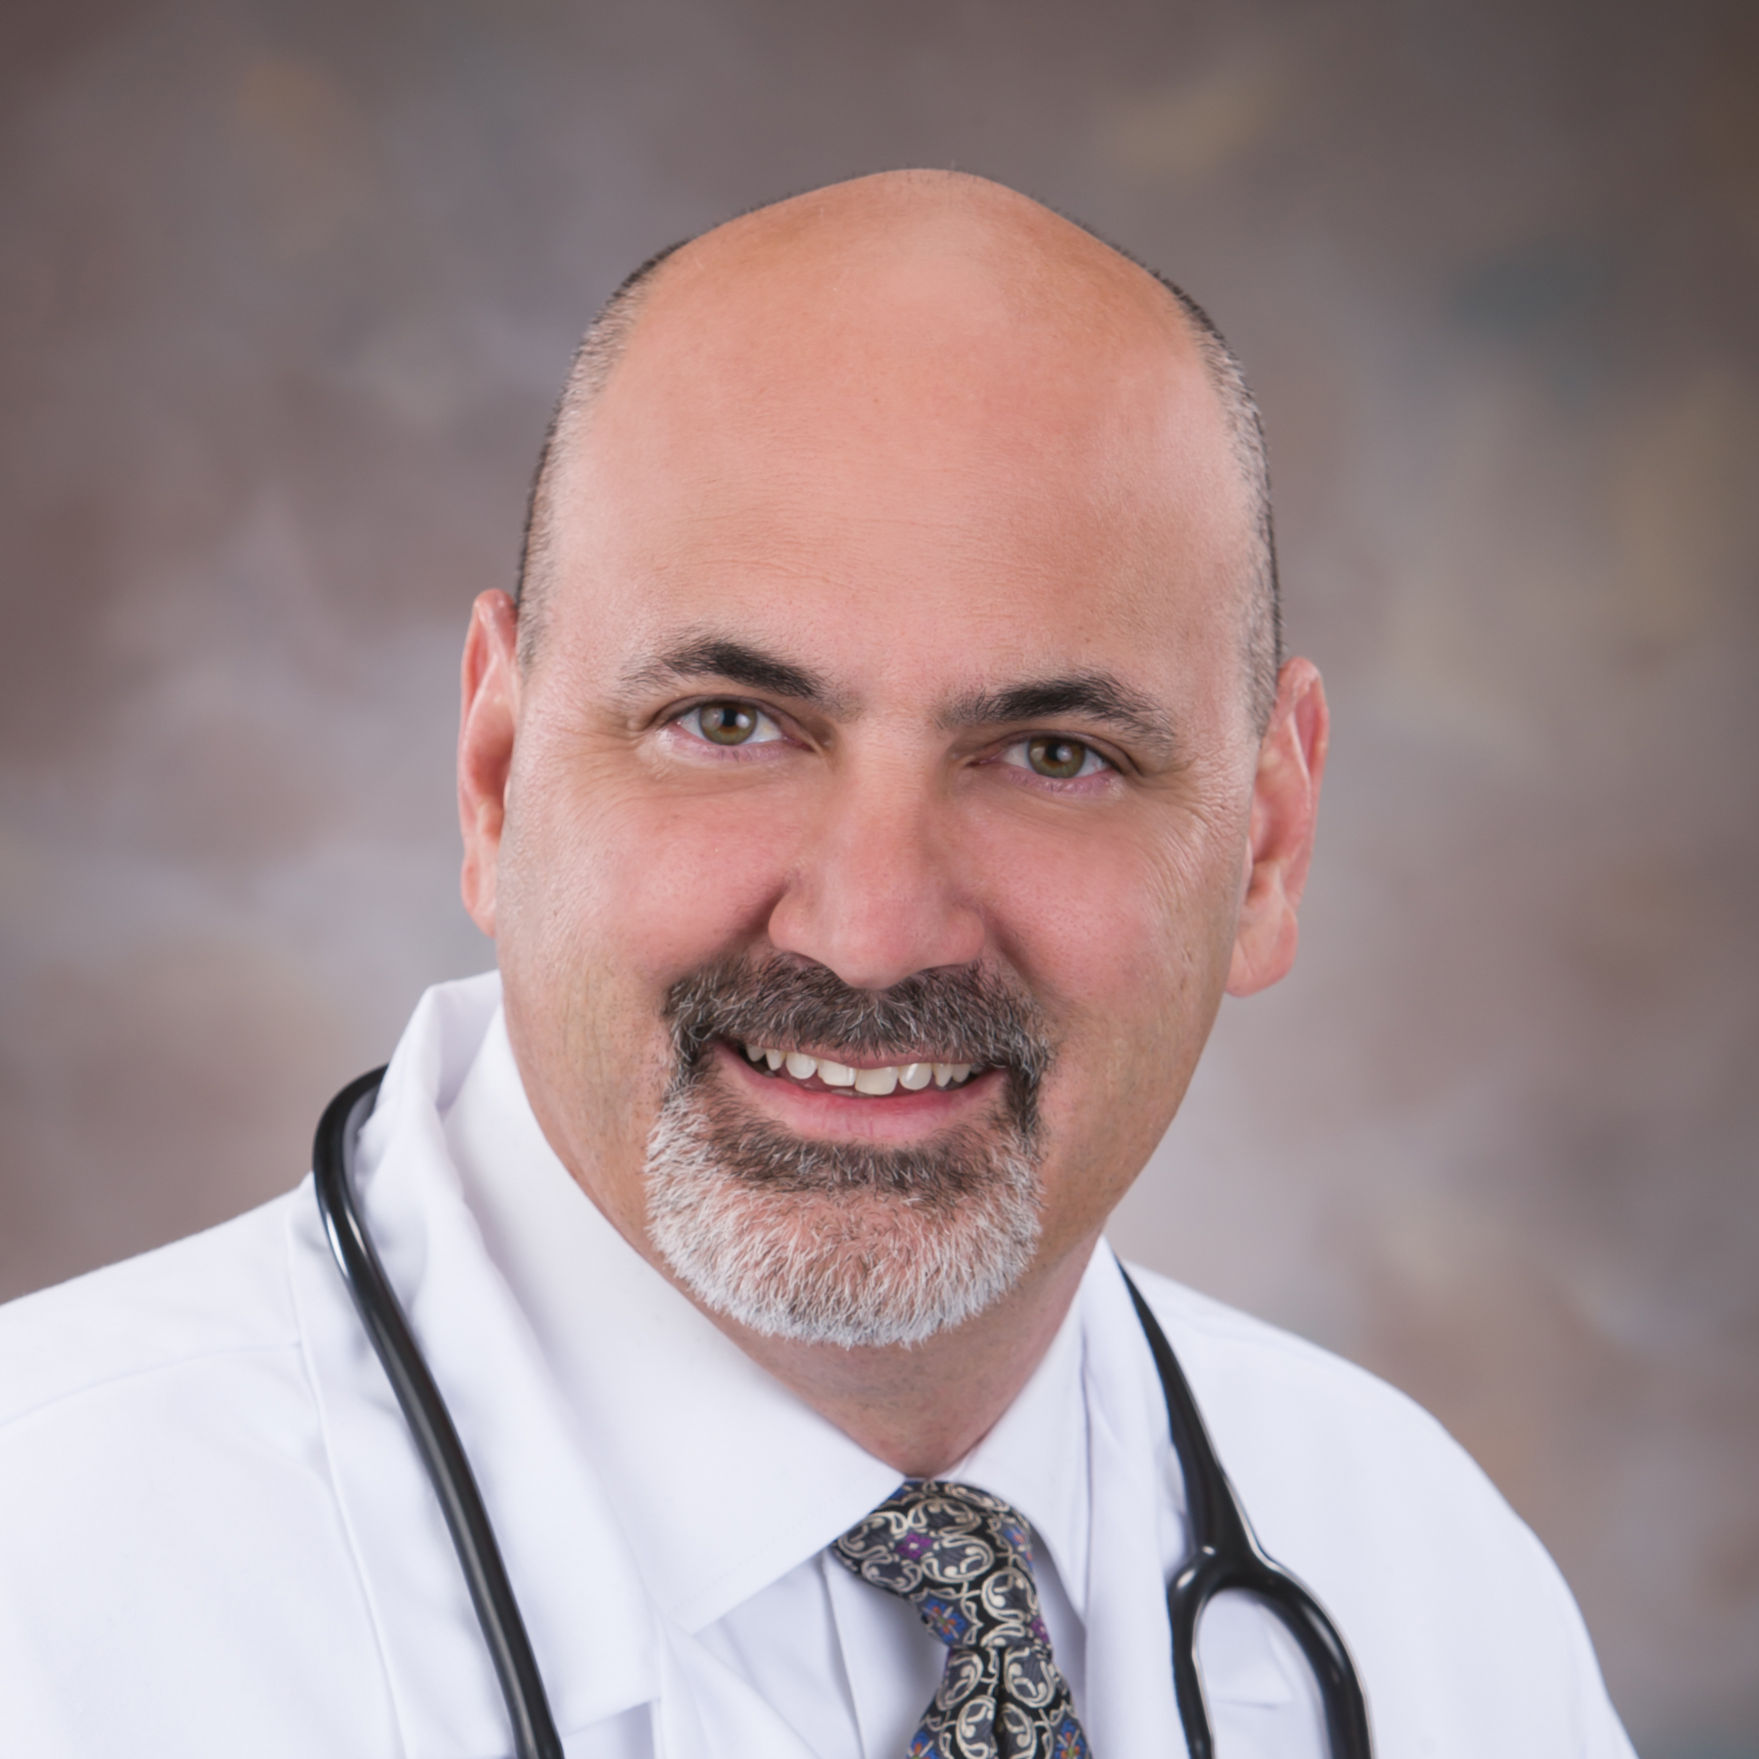 Stephen J Schorr, MD